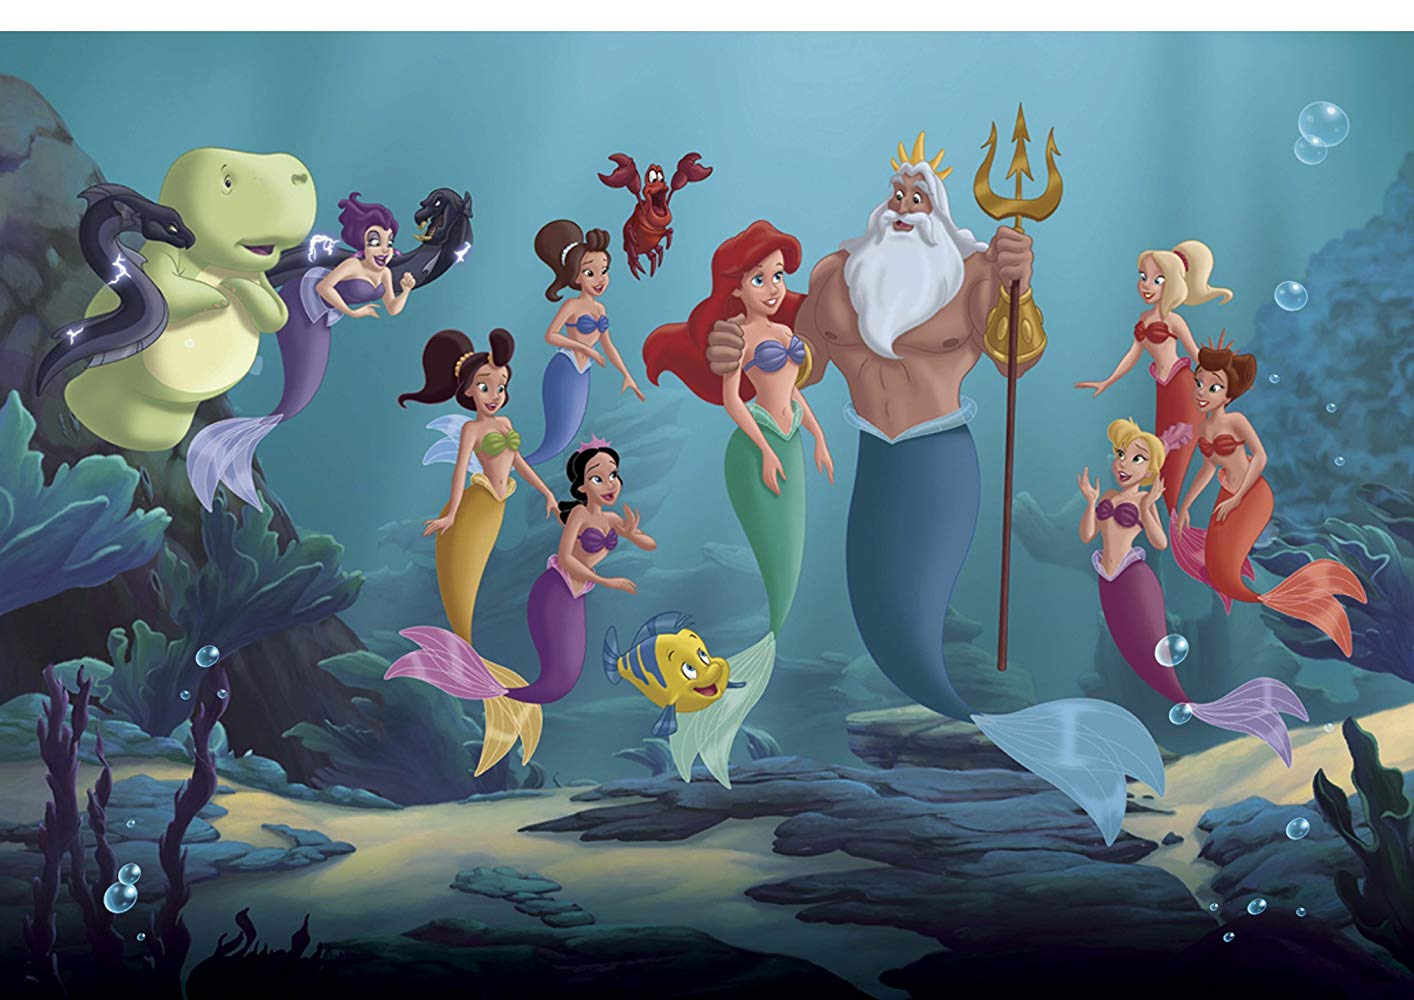 Ariel (c) with King Triton and surrounded by her six sisters, as well as Marina Del Ray (l) and the crab Sebastian and Flounder in The Little Mermaid: Ariel's Beginning (2008)